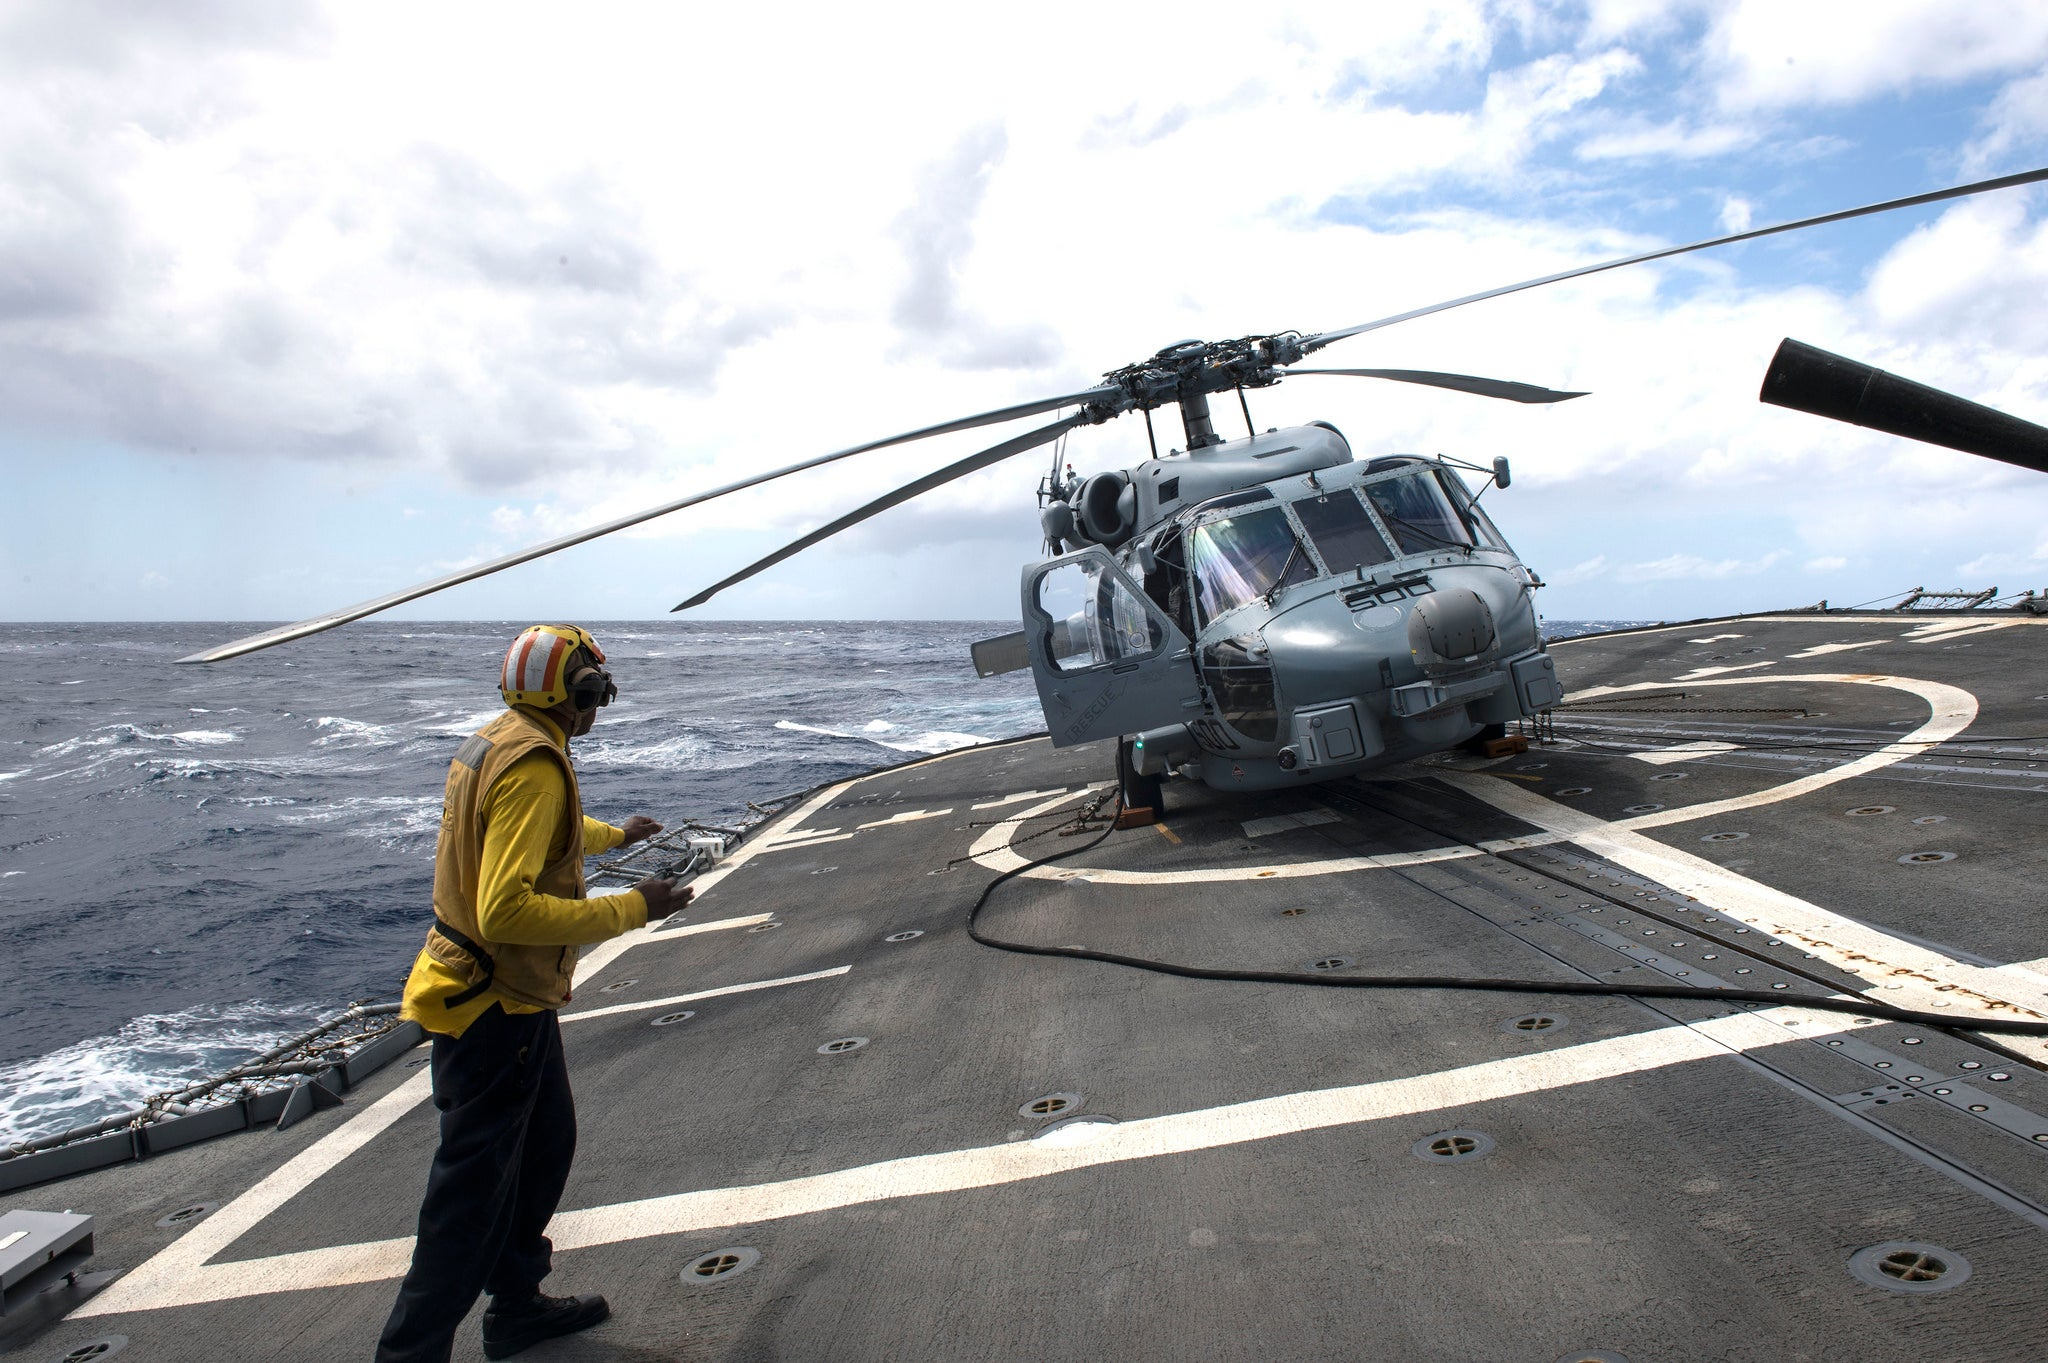 Crazy angle of a US Navy helicopter on a guided-missile cruiser